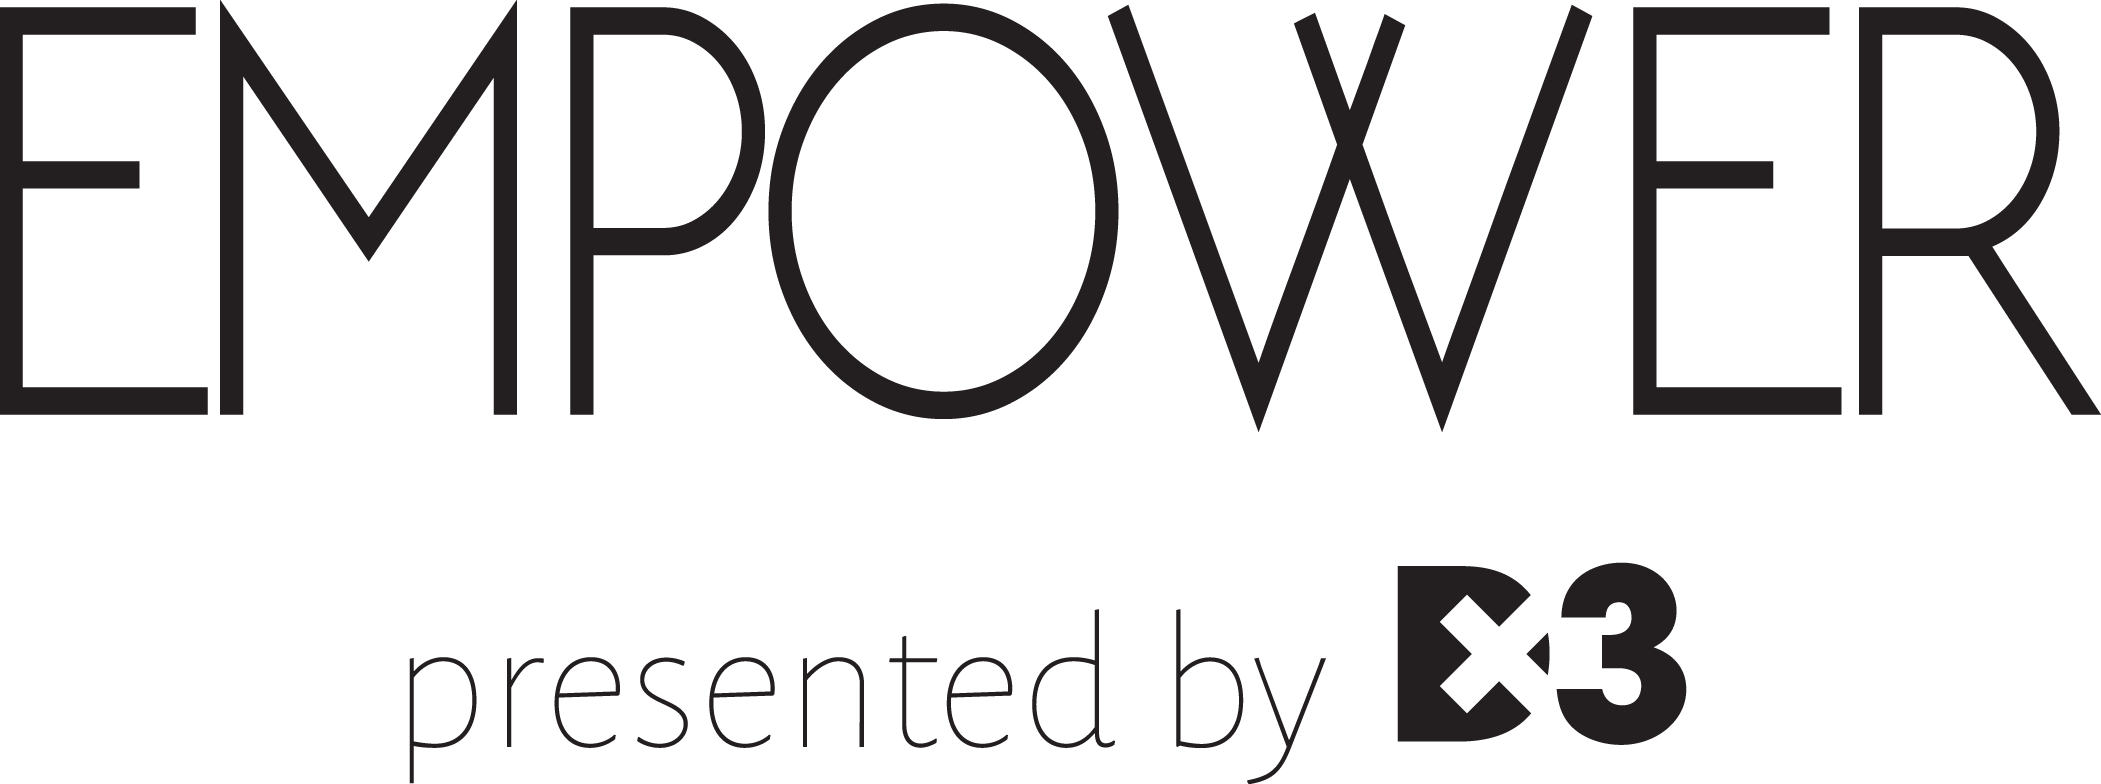 Empower_Logo_FULL